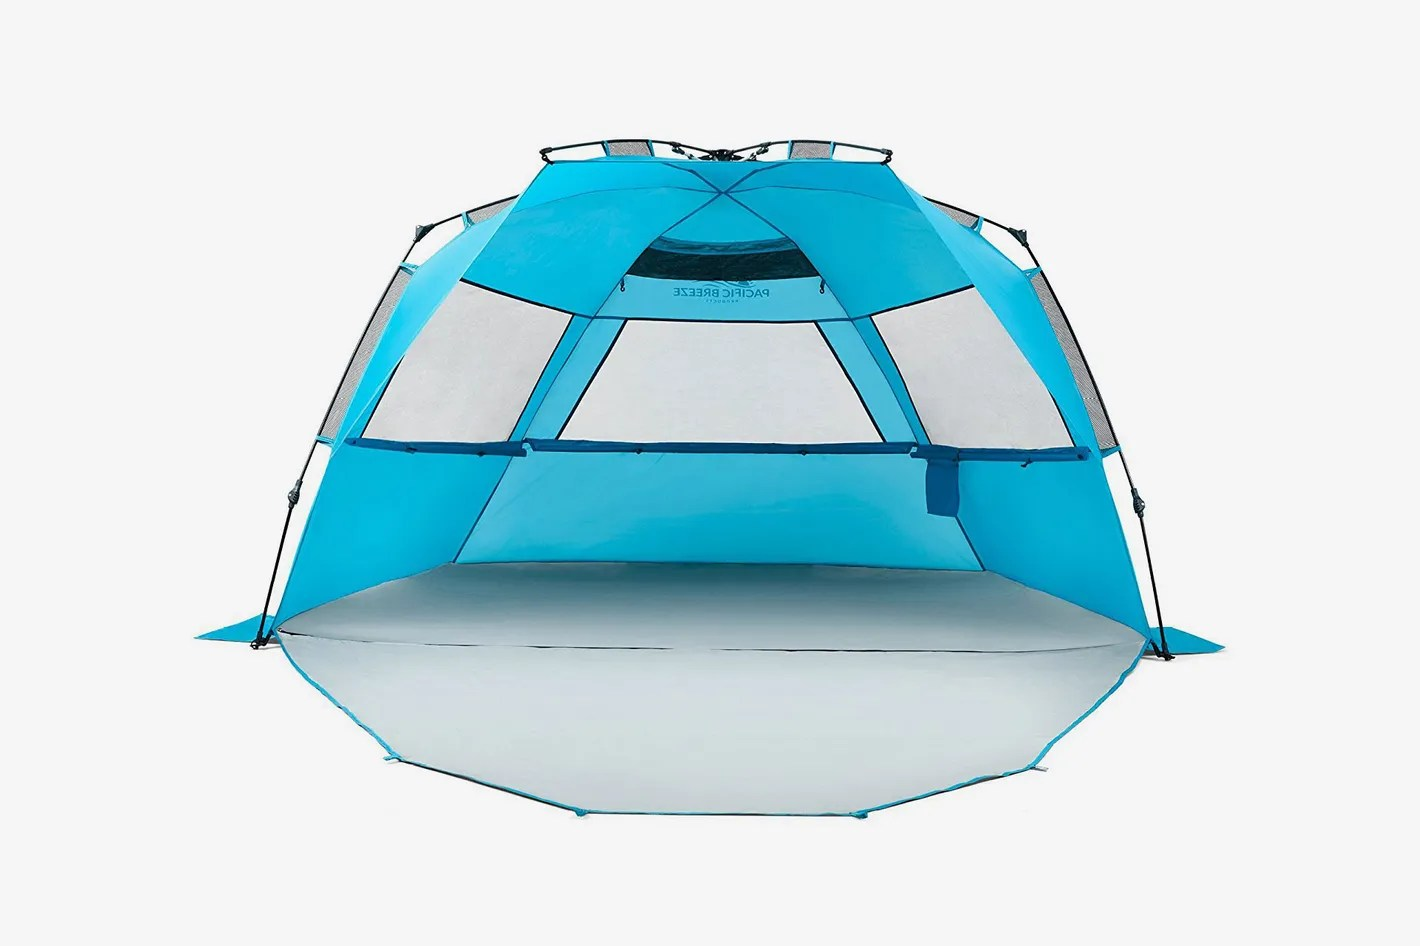 Pop Up Sun Shelter Canada Pacific Breeze Easy Setup Beach Tent Deluxe Xl With Extendable Floor